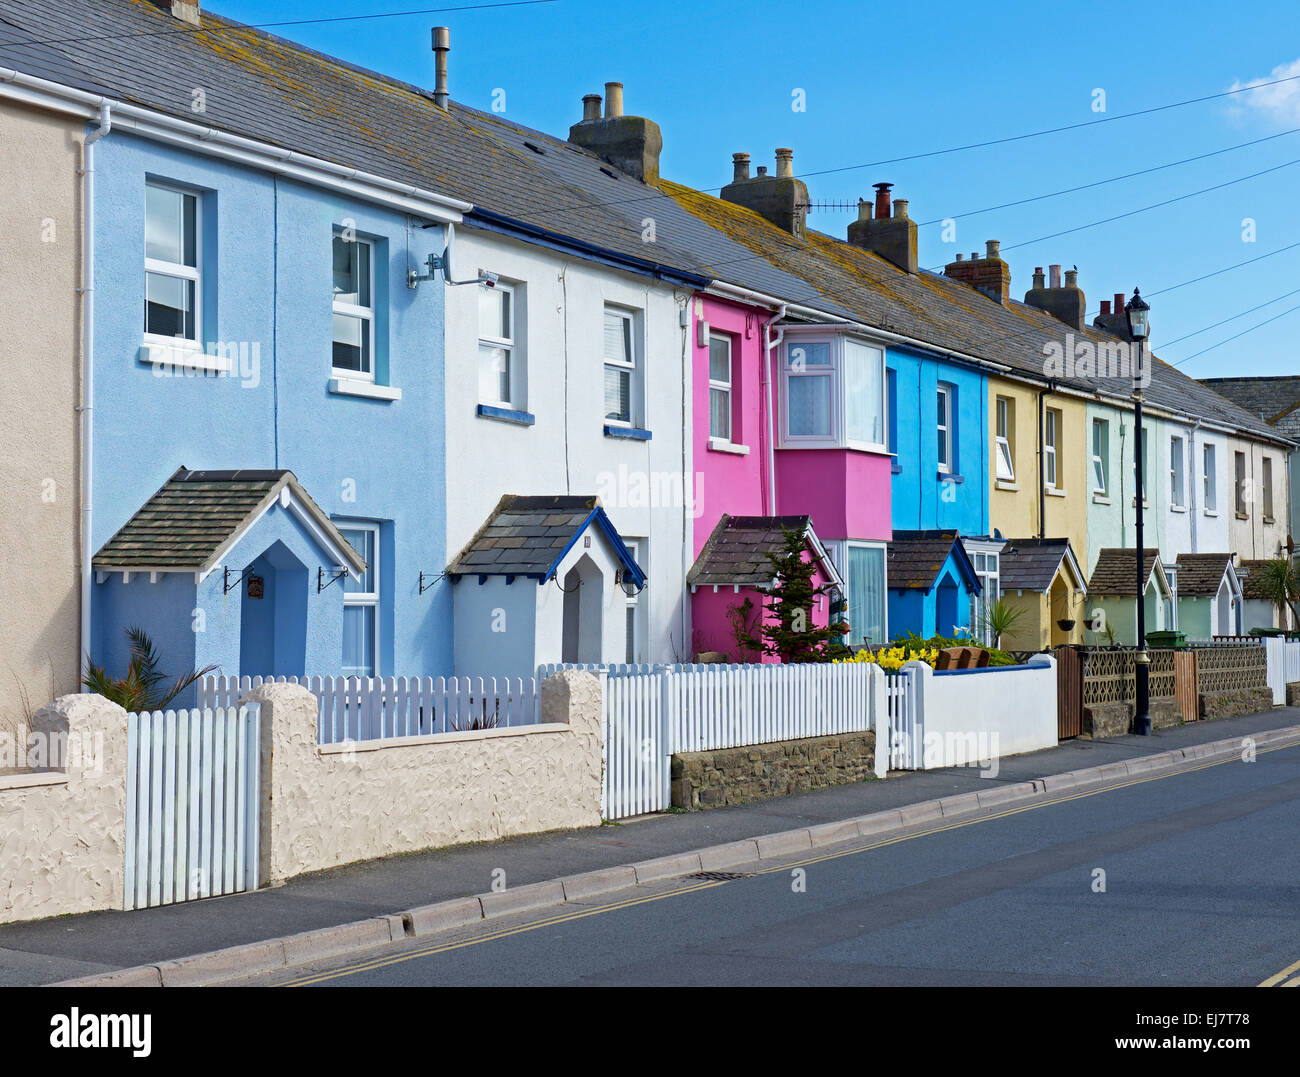 The Coloured House.Coloured Houses Stock Photos Coloured Houses Stock Images